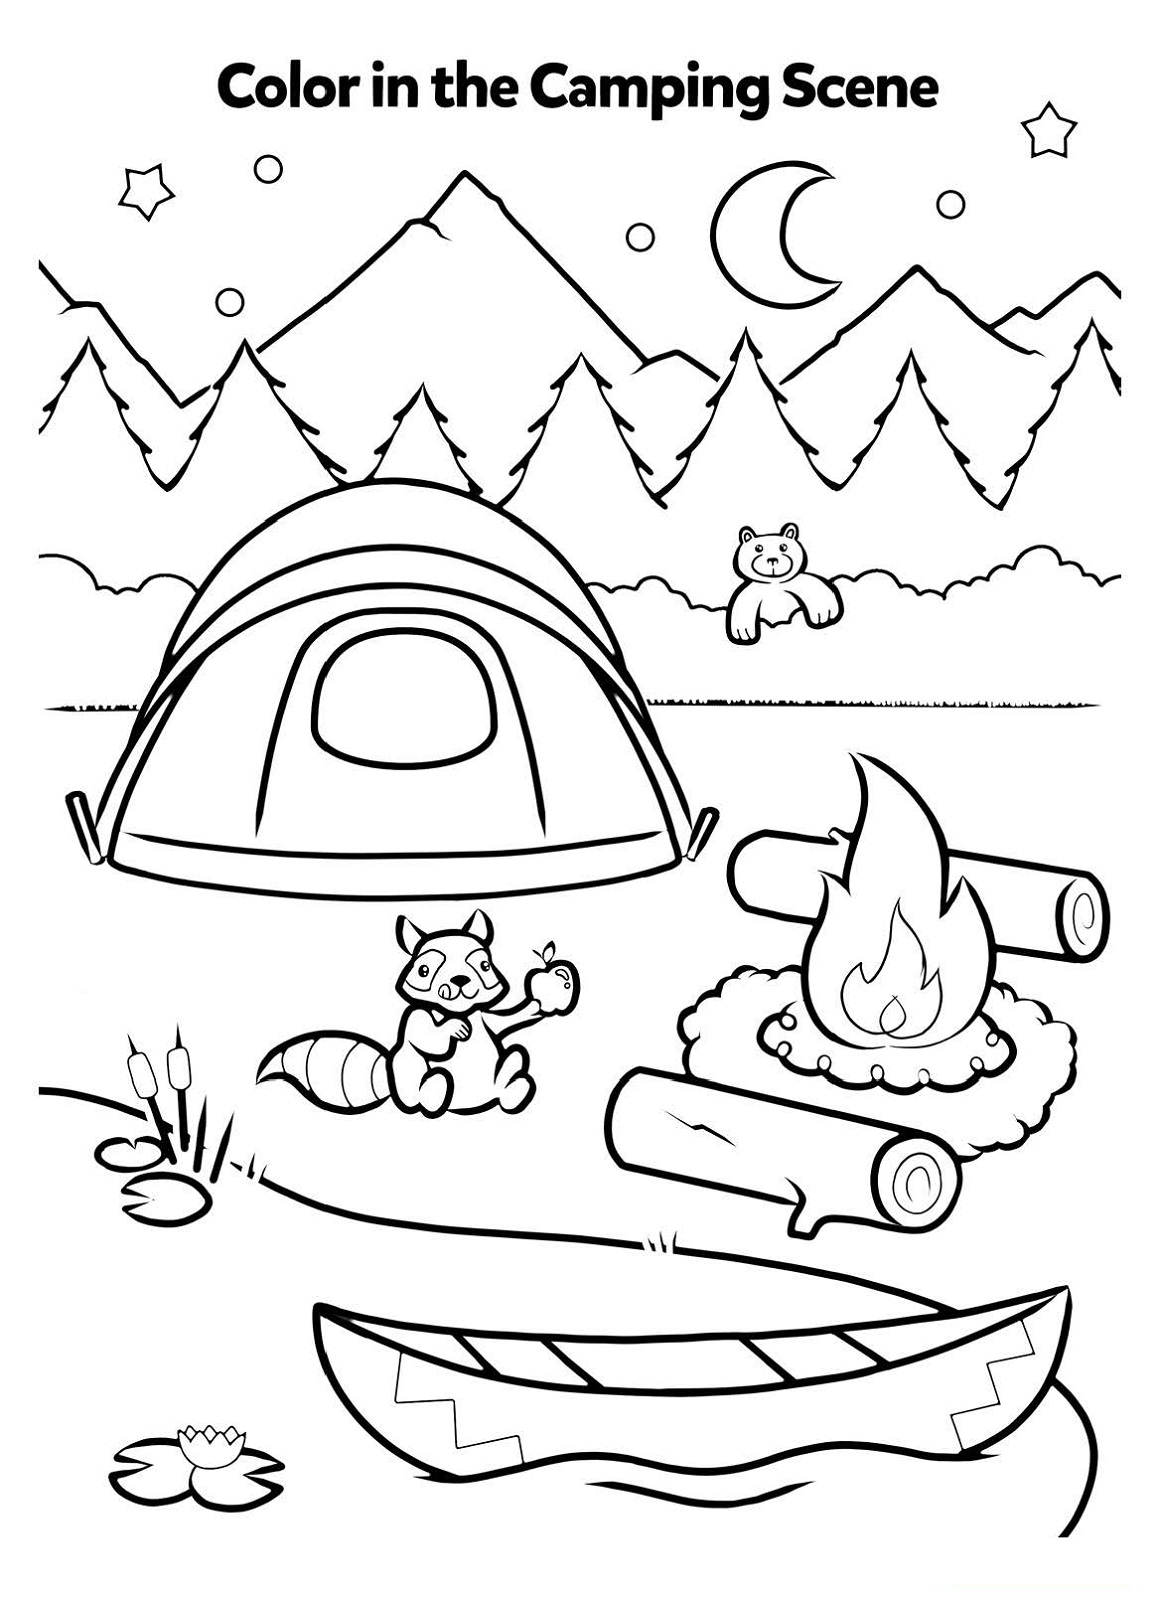 Activity Sheet for Kids Coloring the Camping Scene